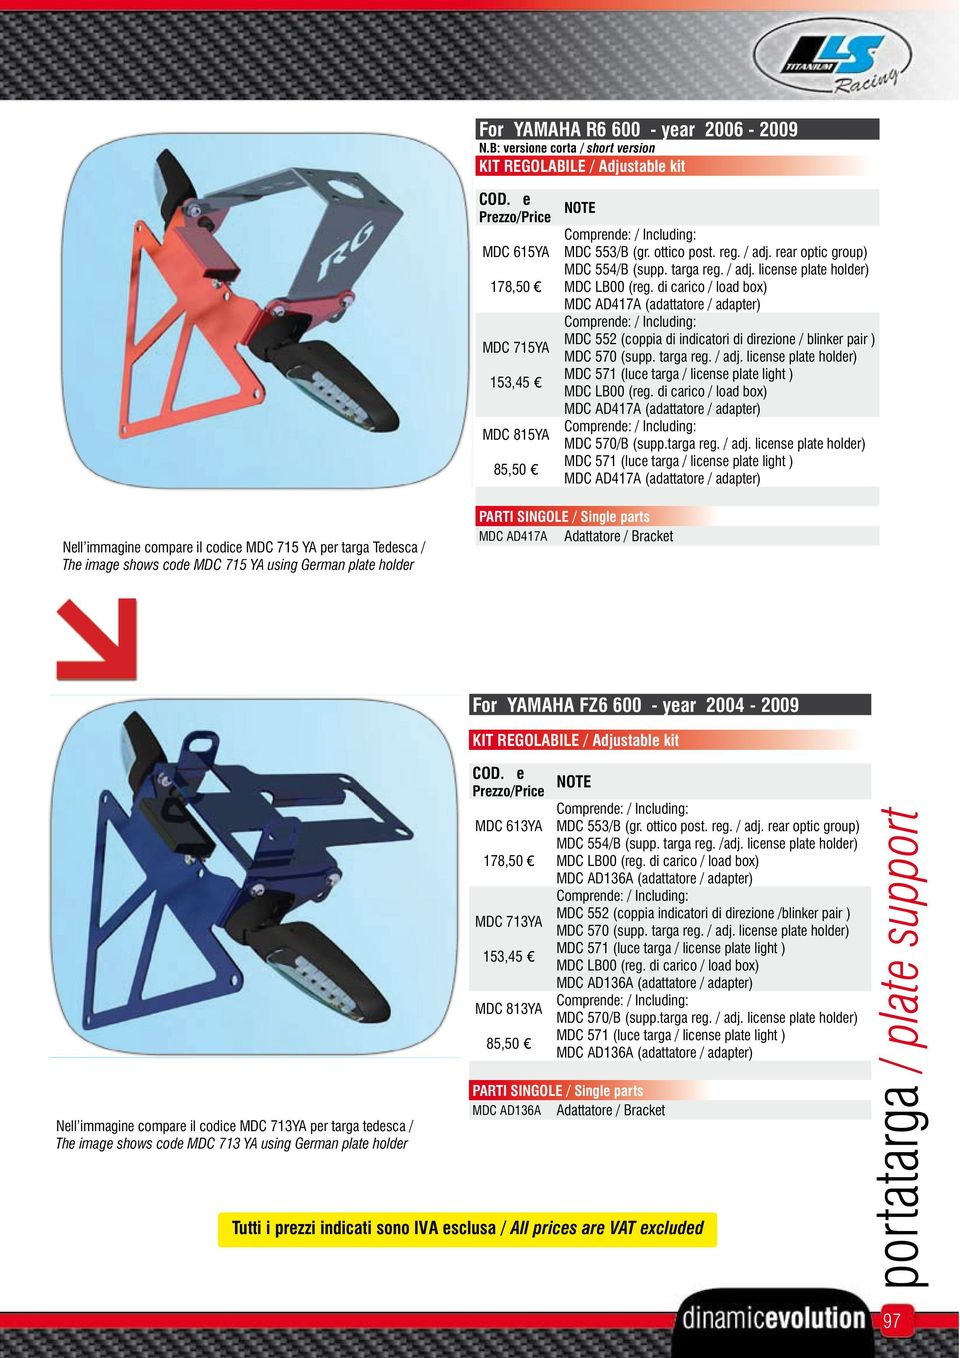 MDC 715 YA per targa Tedesca / The image shows code MDC 715 YA using German plate holder MDC AD417A Adattatore / Bracket For YAMAHA FZ6 600 - year 2004-2009 Nell immagine compare il codice MDC 713YA